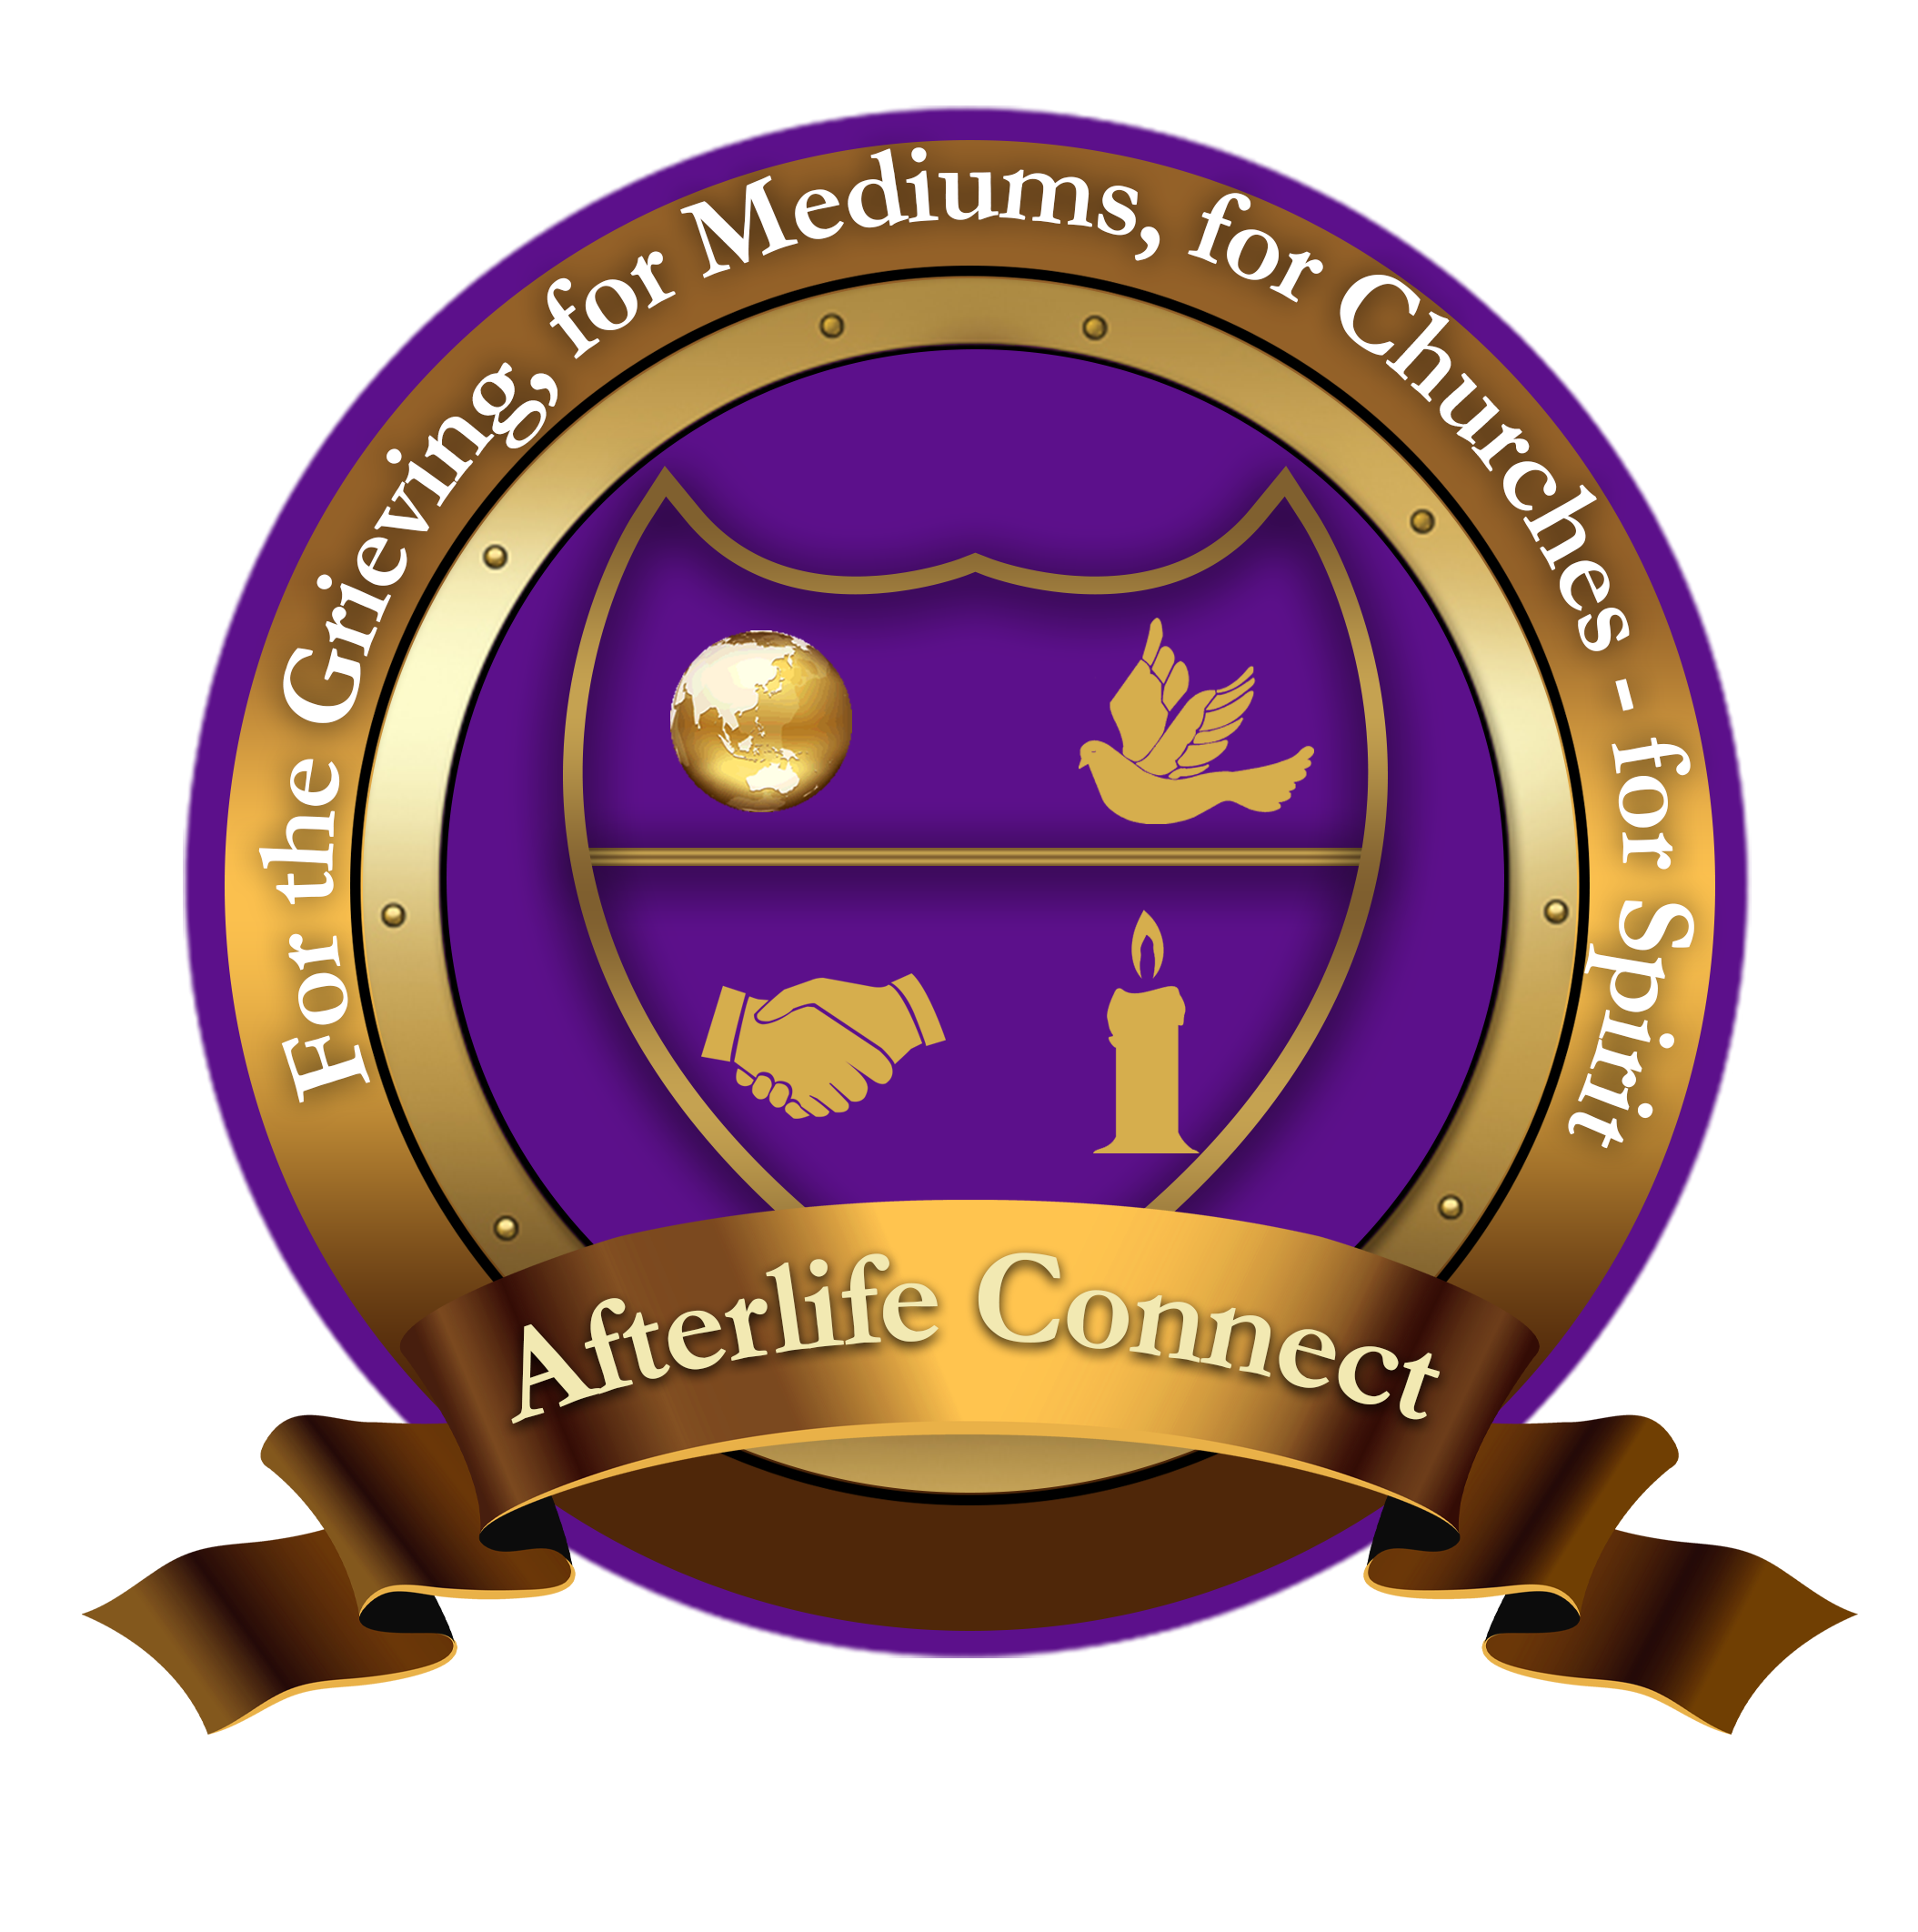 evidential medium Evidential Medium afterlifeconnect clear seal 2